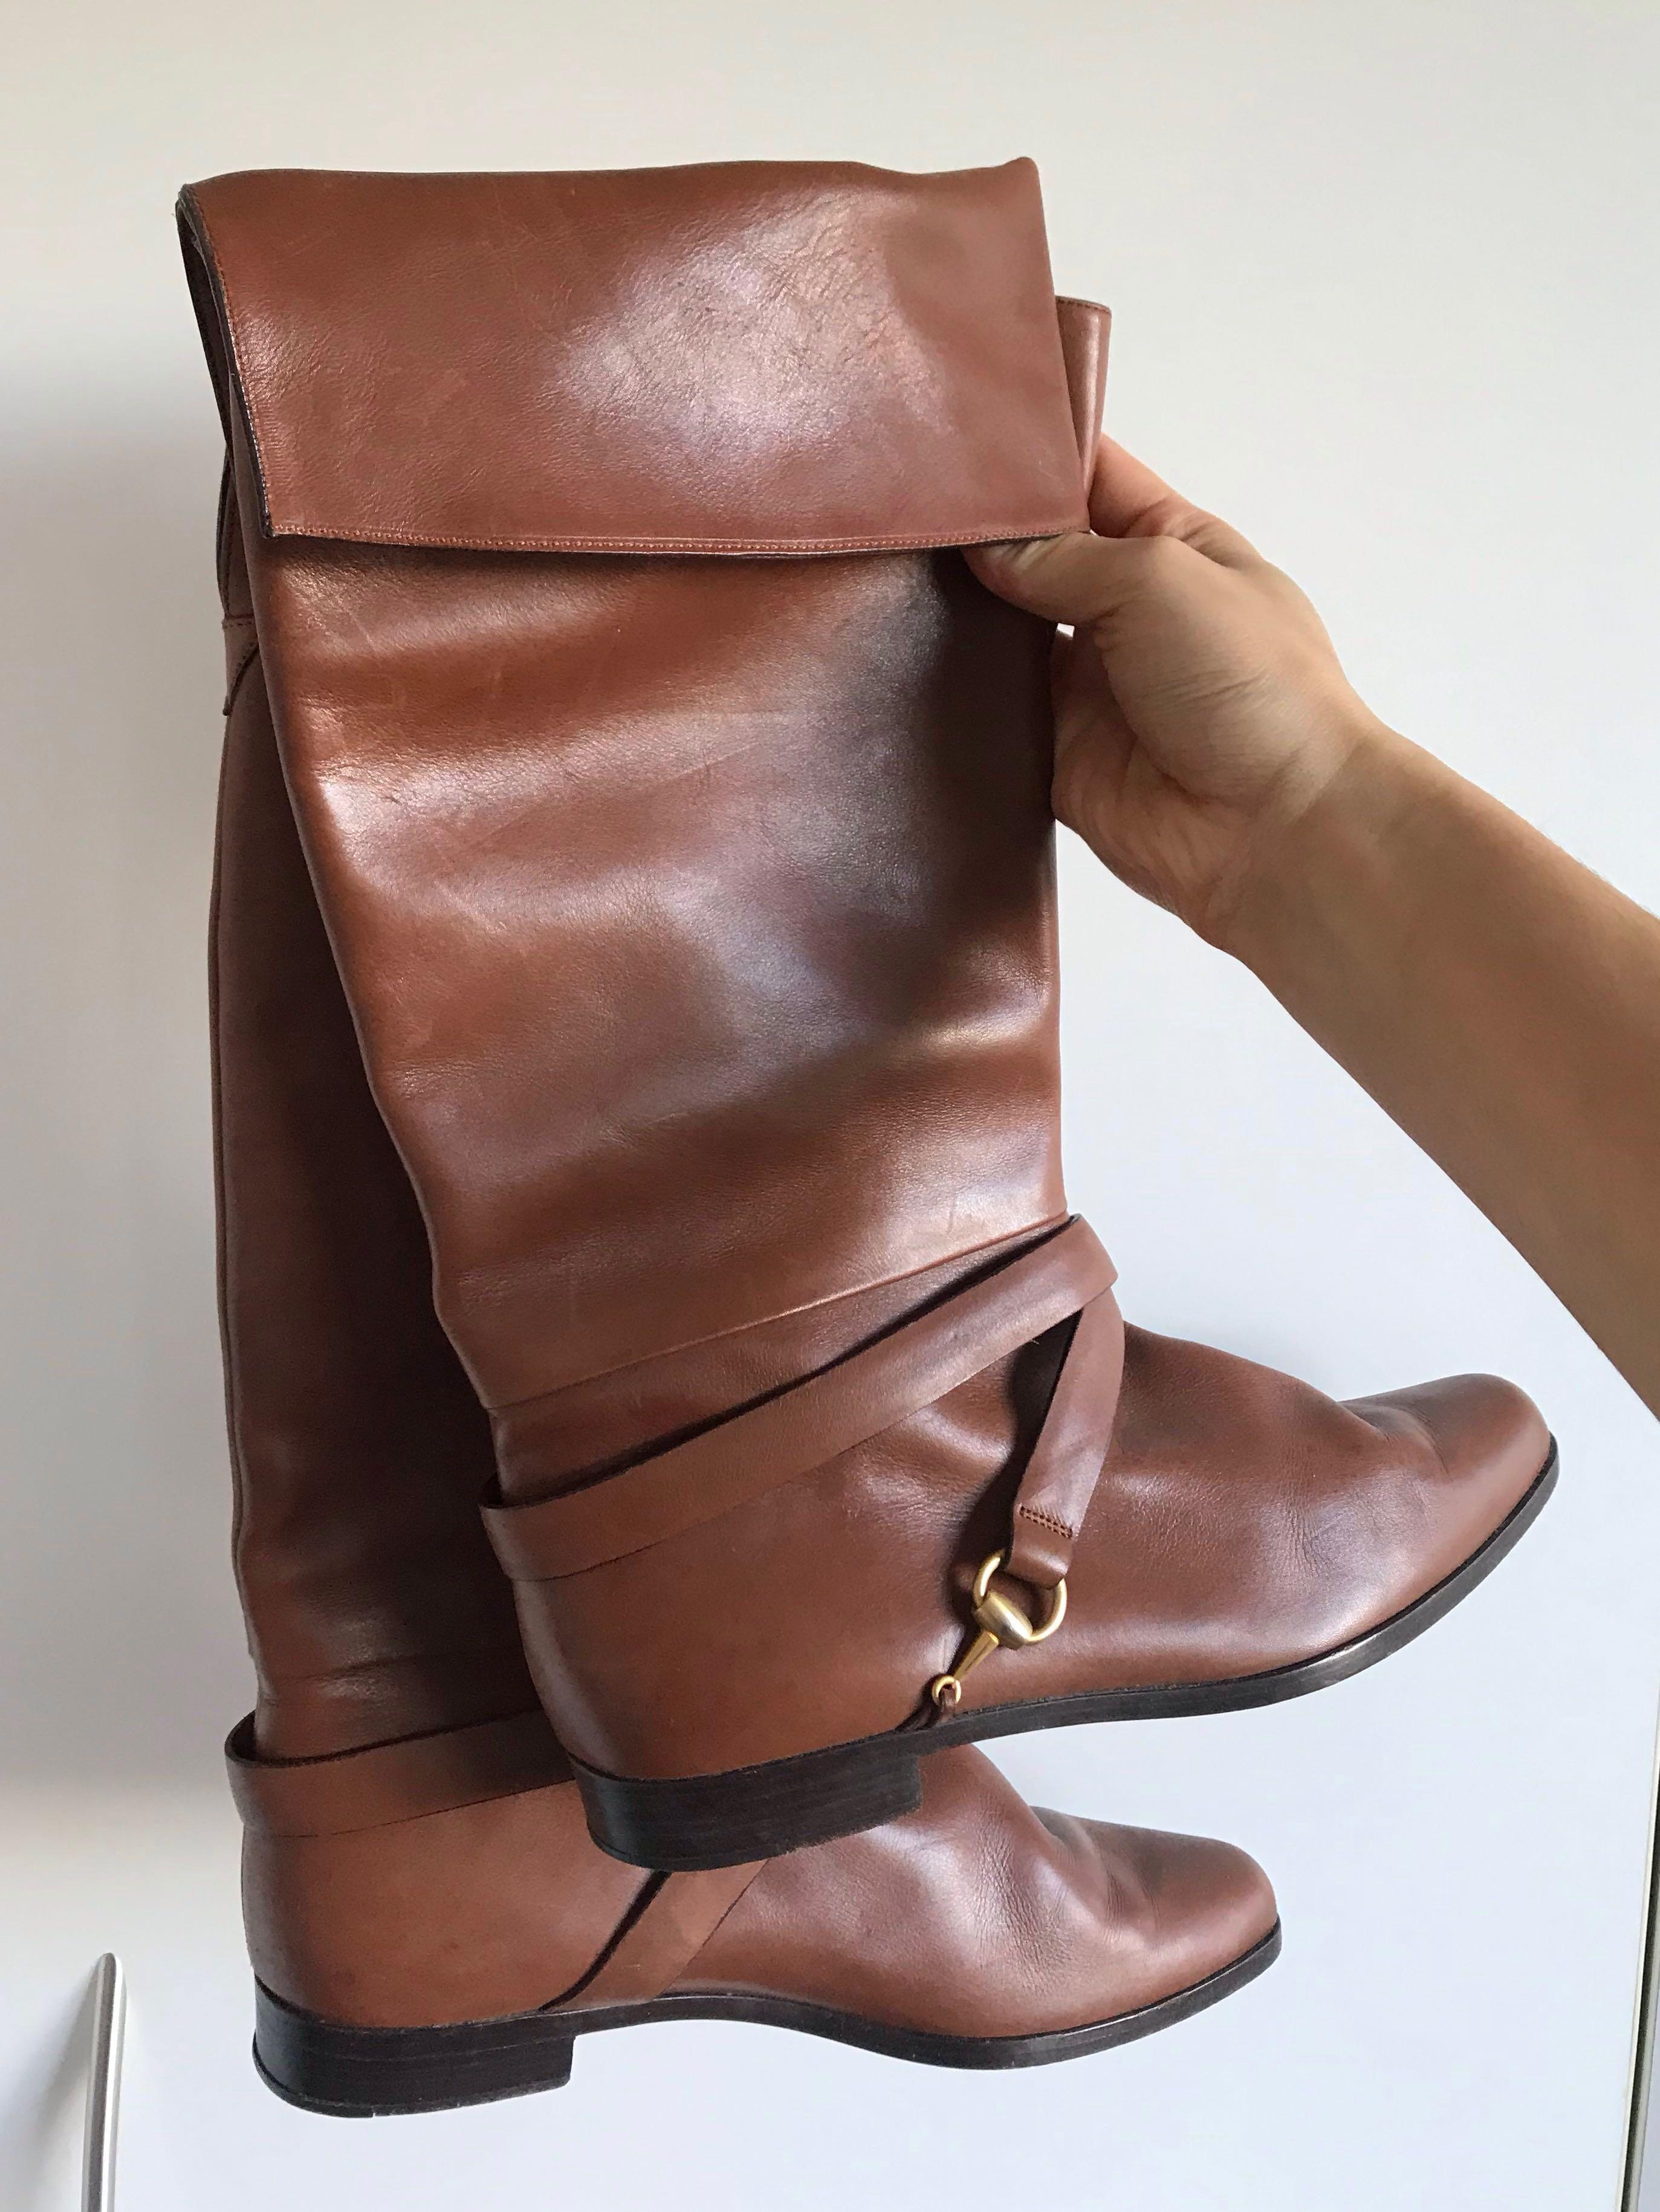 Authentic vintage Gucci leather long tall boots with signature Gucci buckle detail size 39